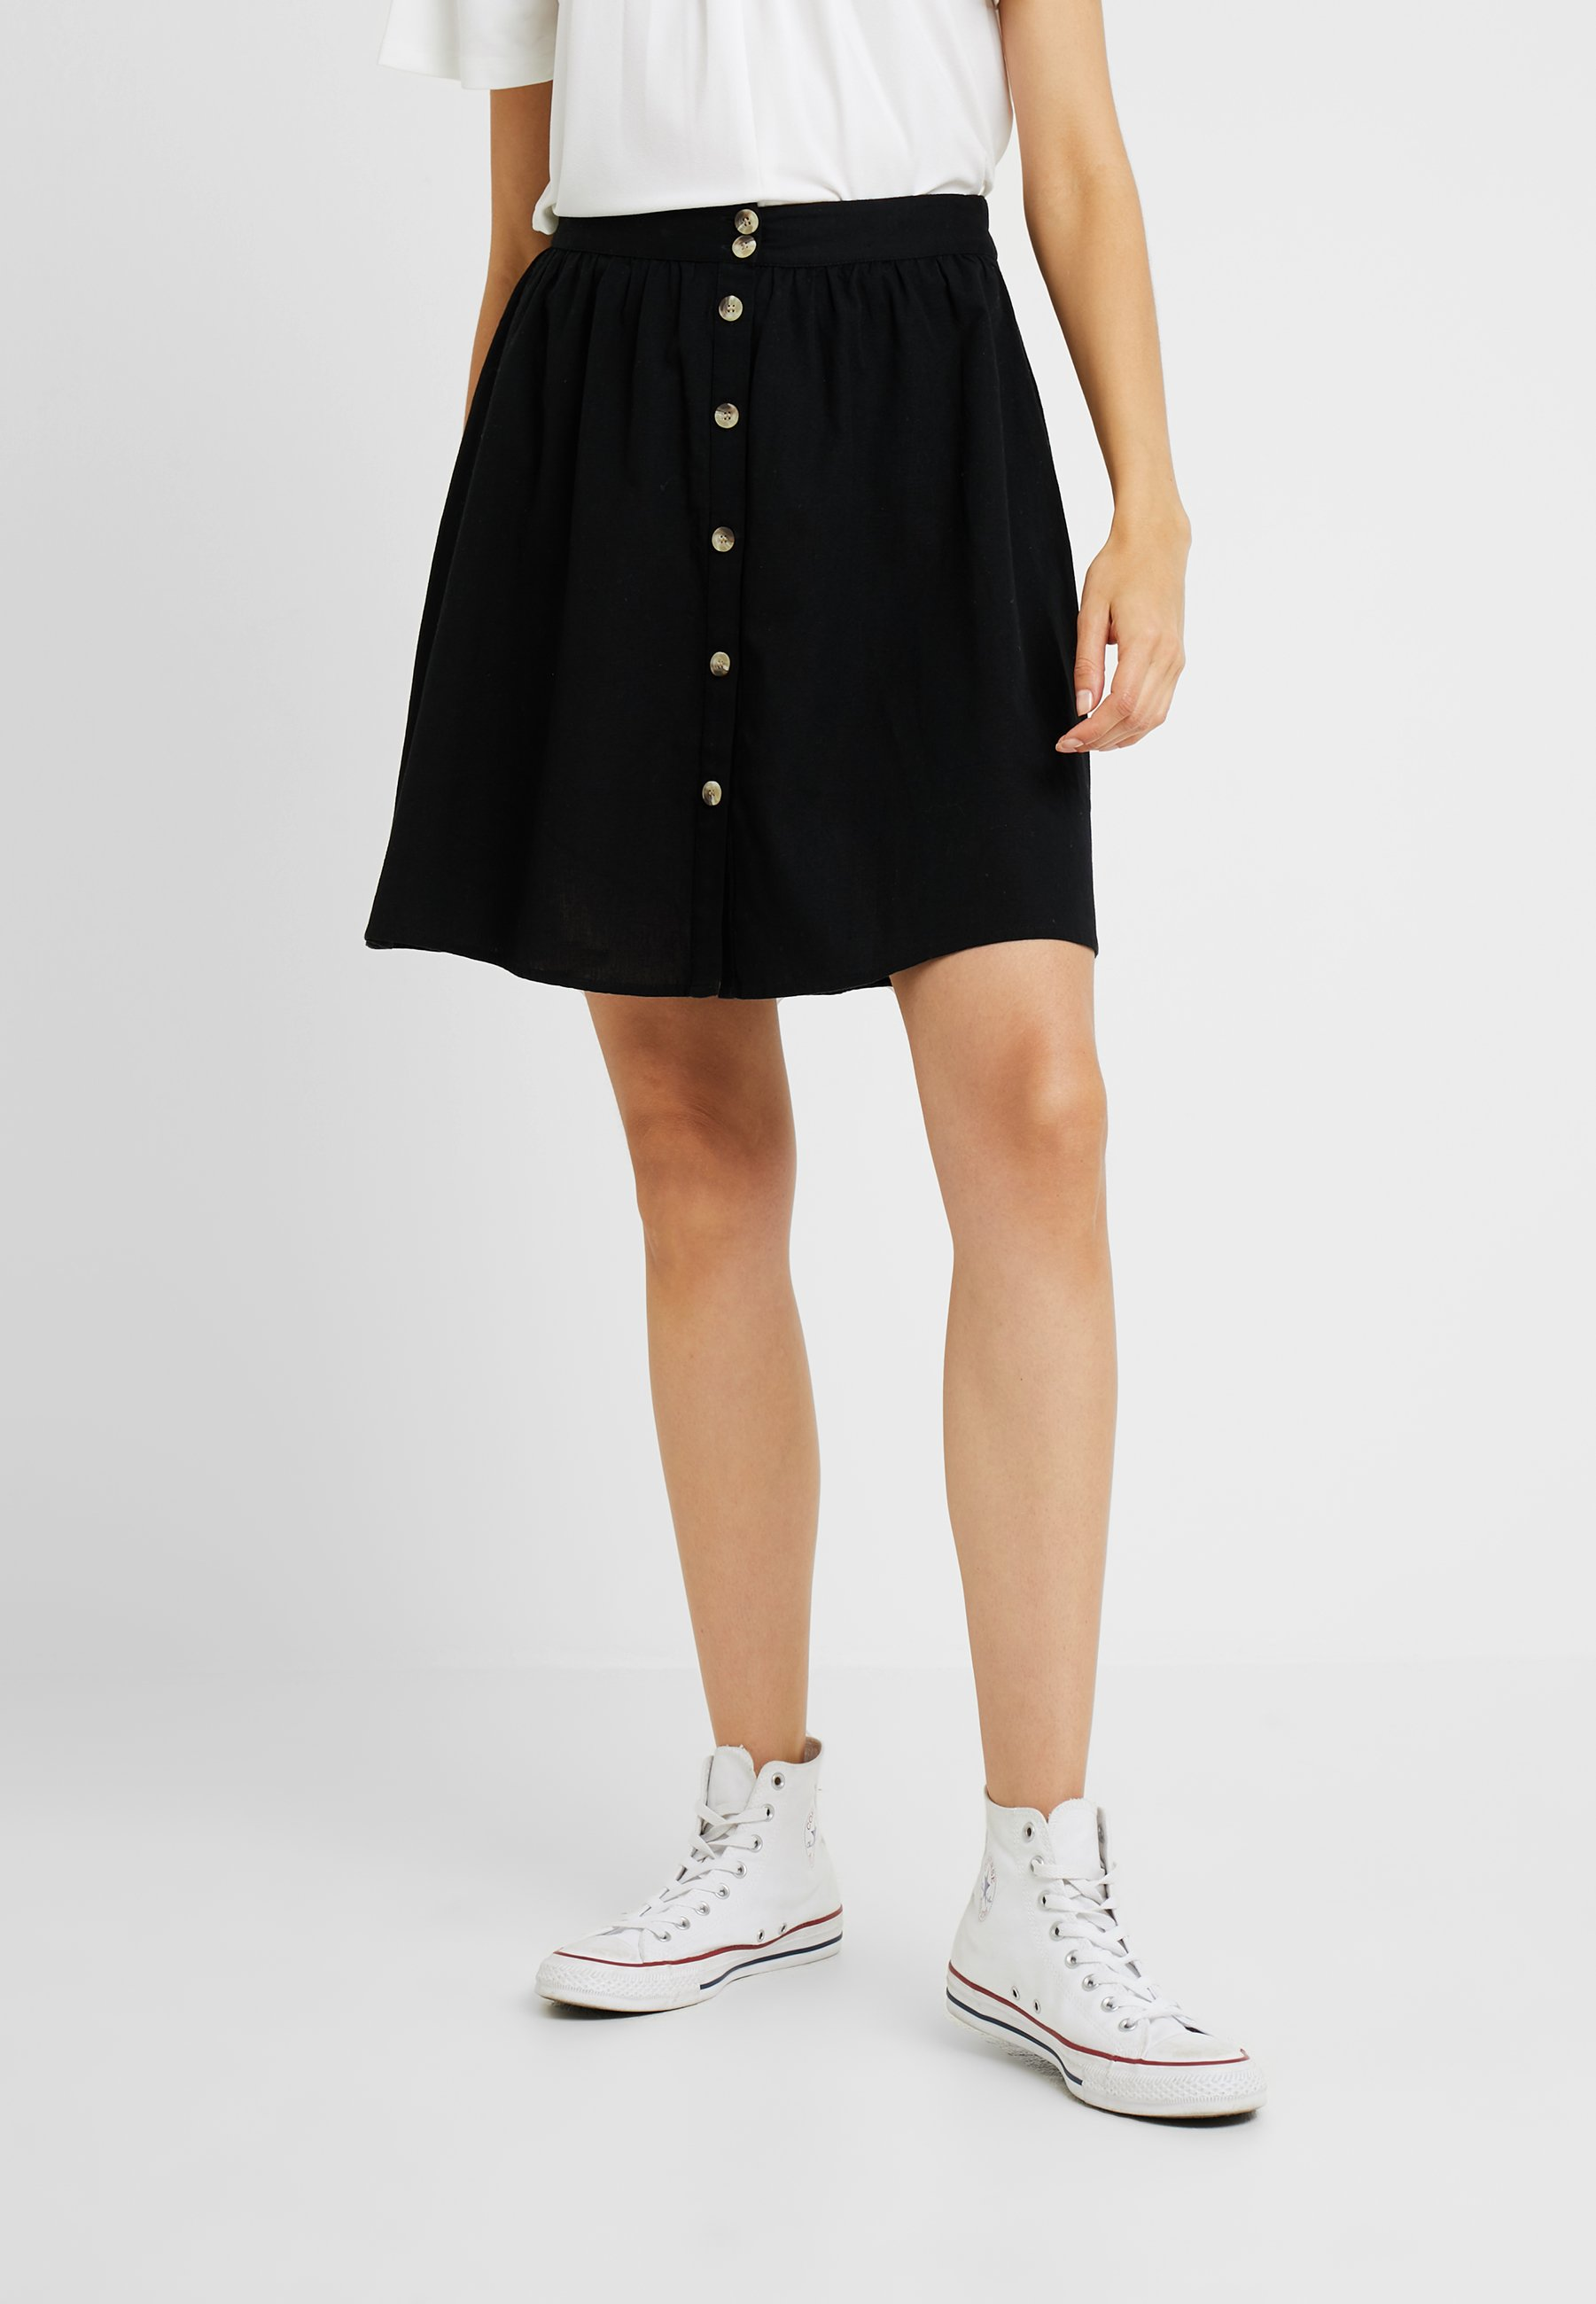 Pieces Black Pcedora Tall SkirtJupe Trapèze dBoWeCrx